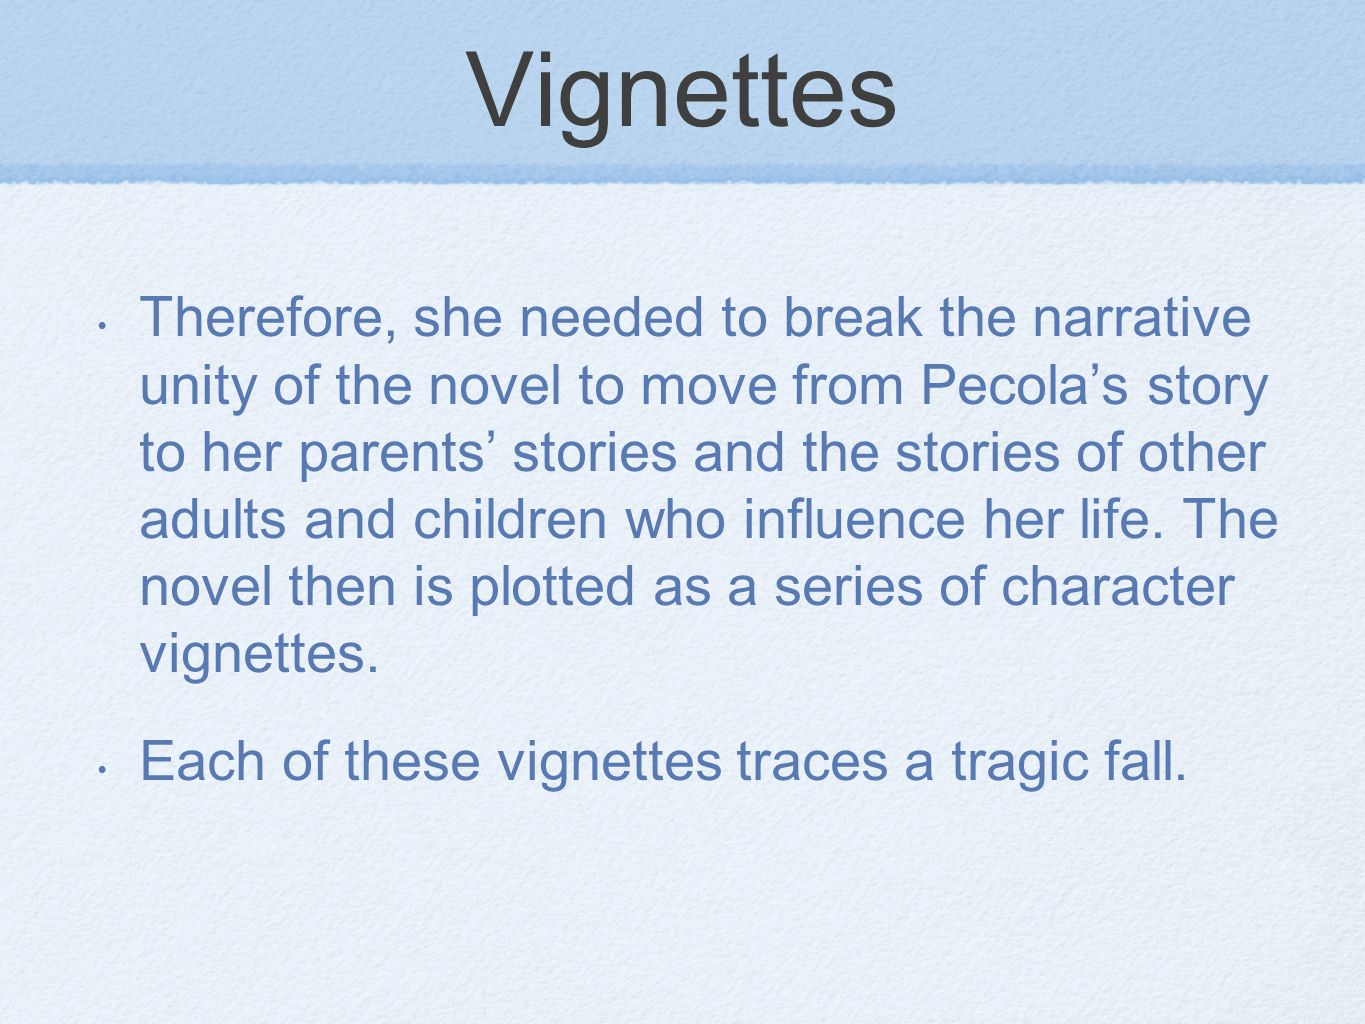 Vignettes Therefore, she needed to break the narrative unity of the novel to move from Pecolas story to her parents stories and the stories of other adults and children who influence her life.